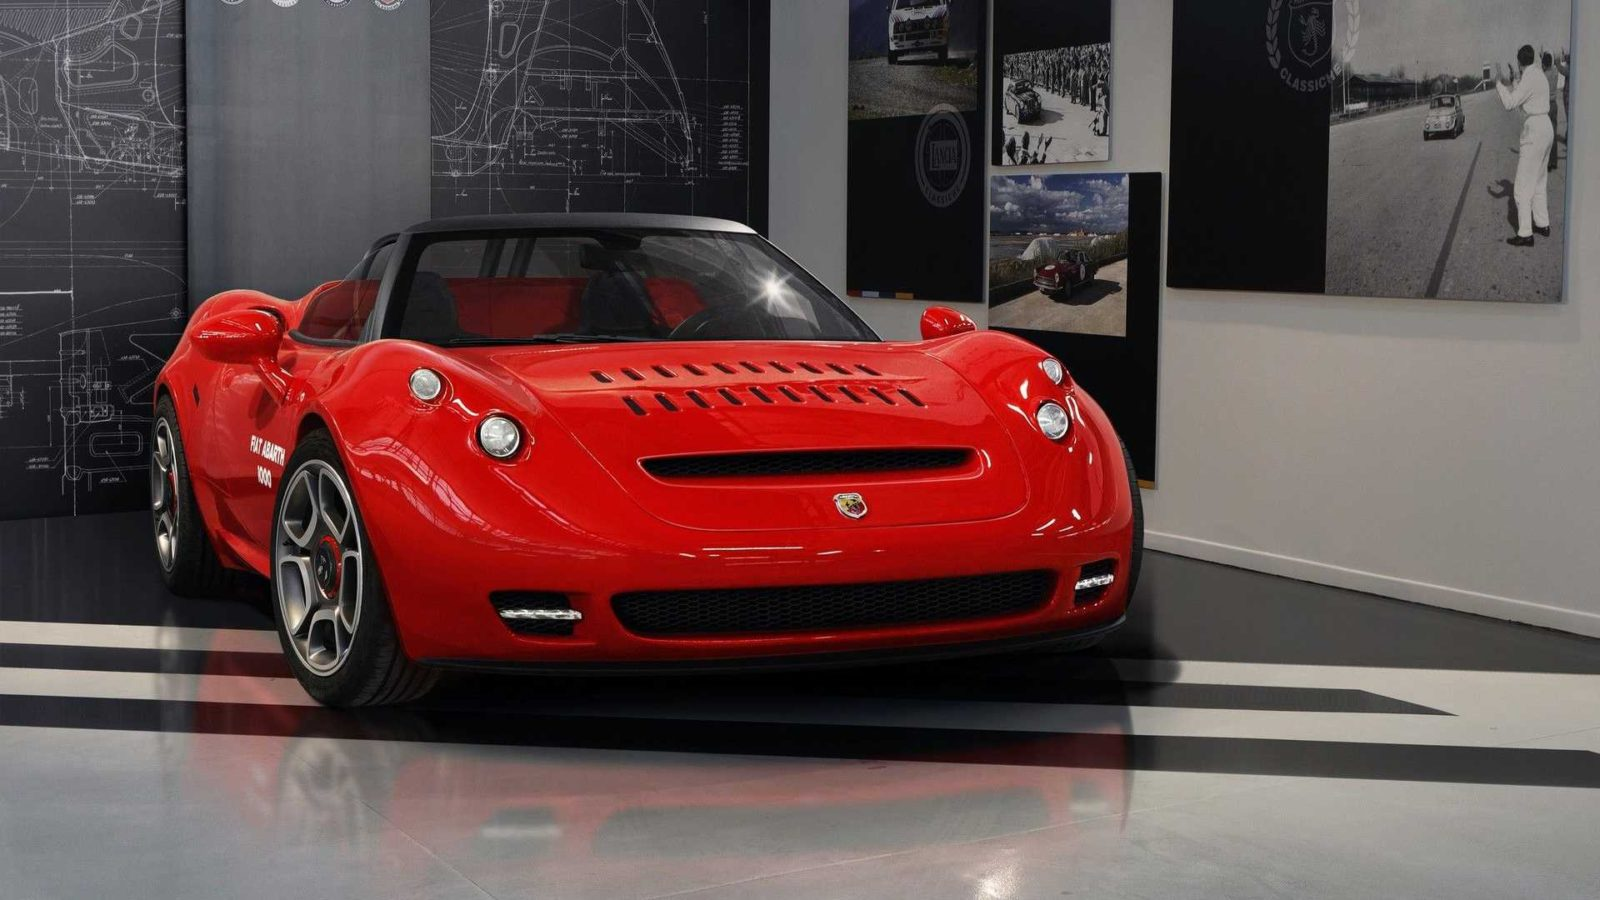 modern-fiat-abarth-1000-sp-imagined-with-concept